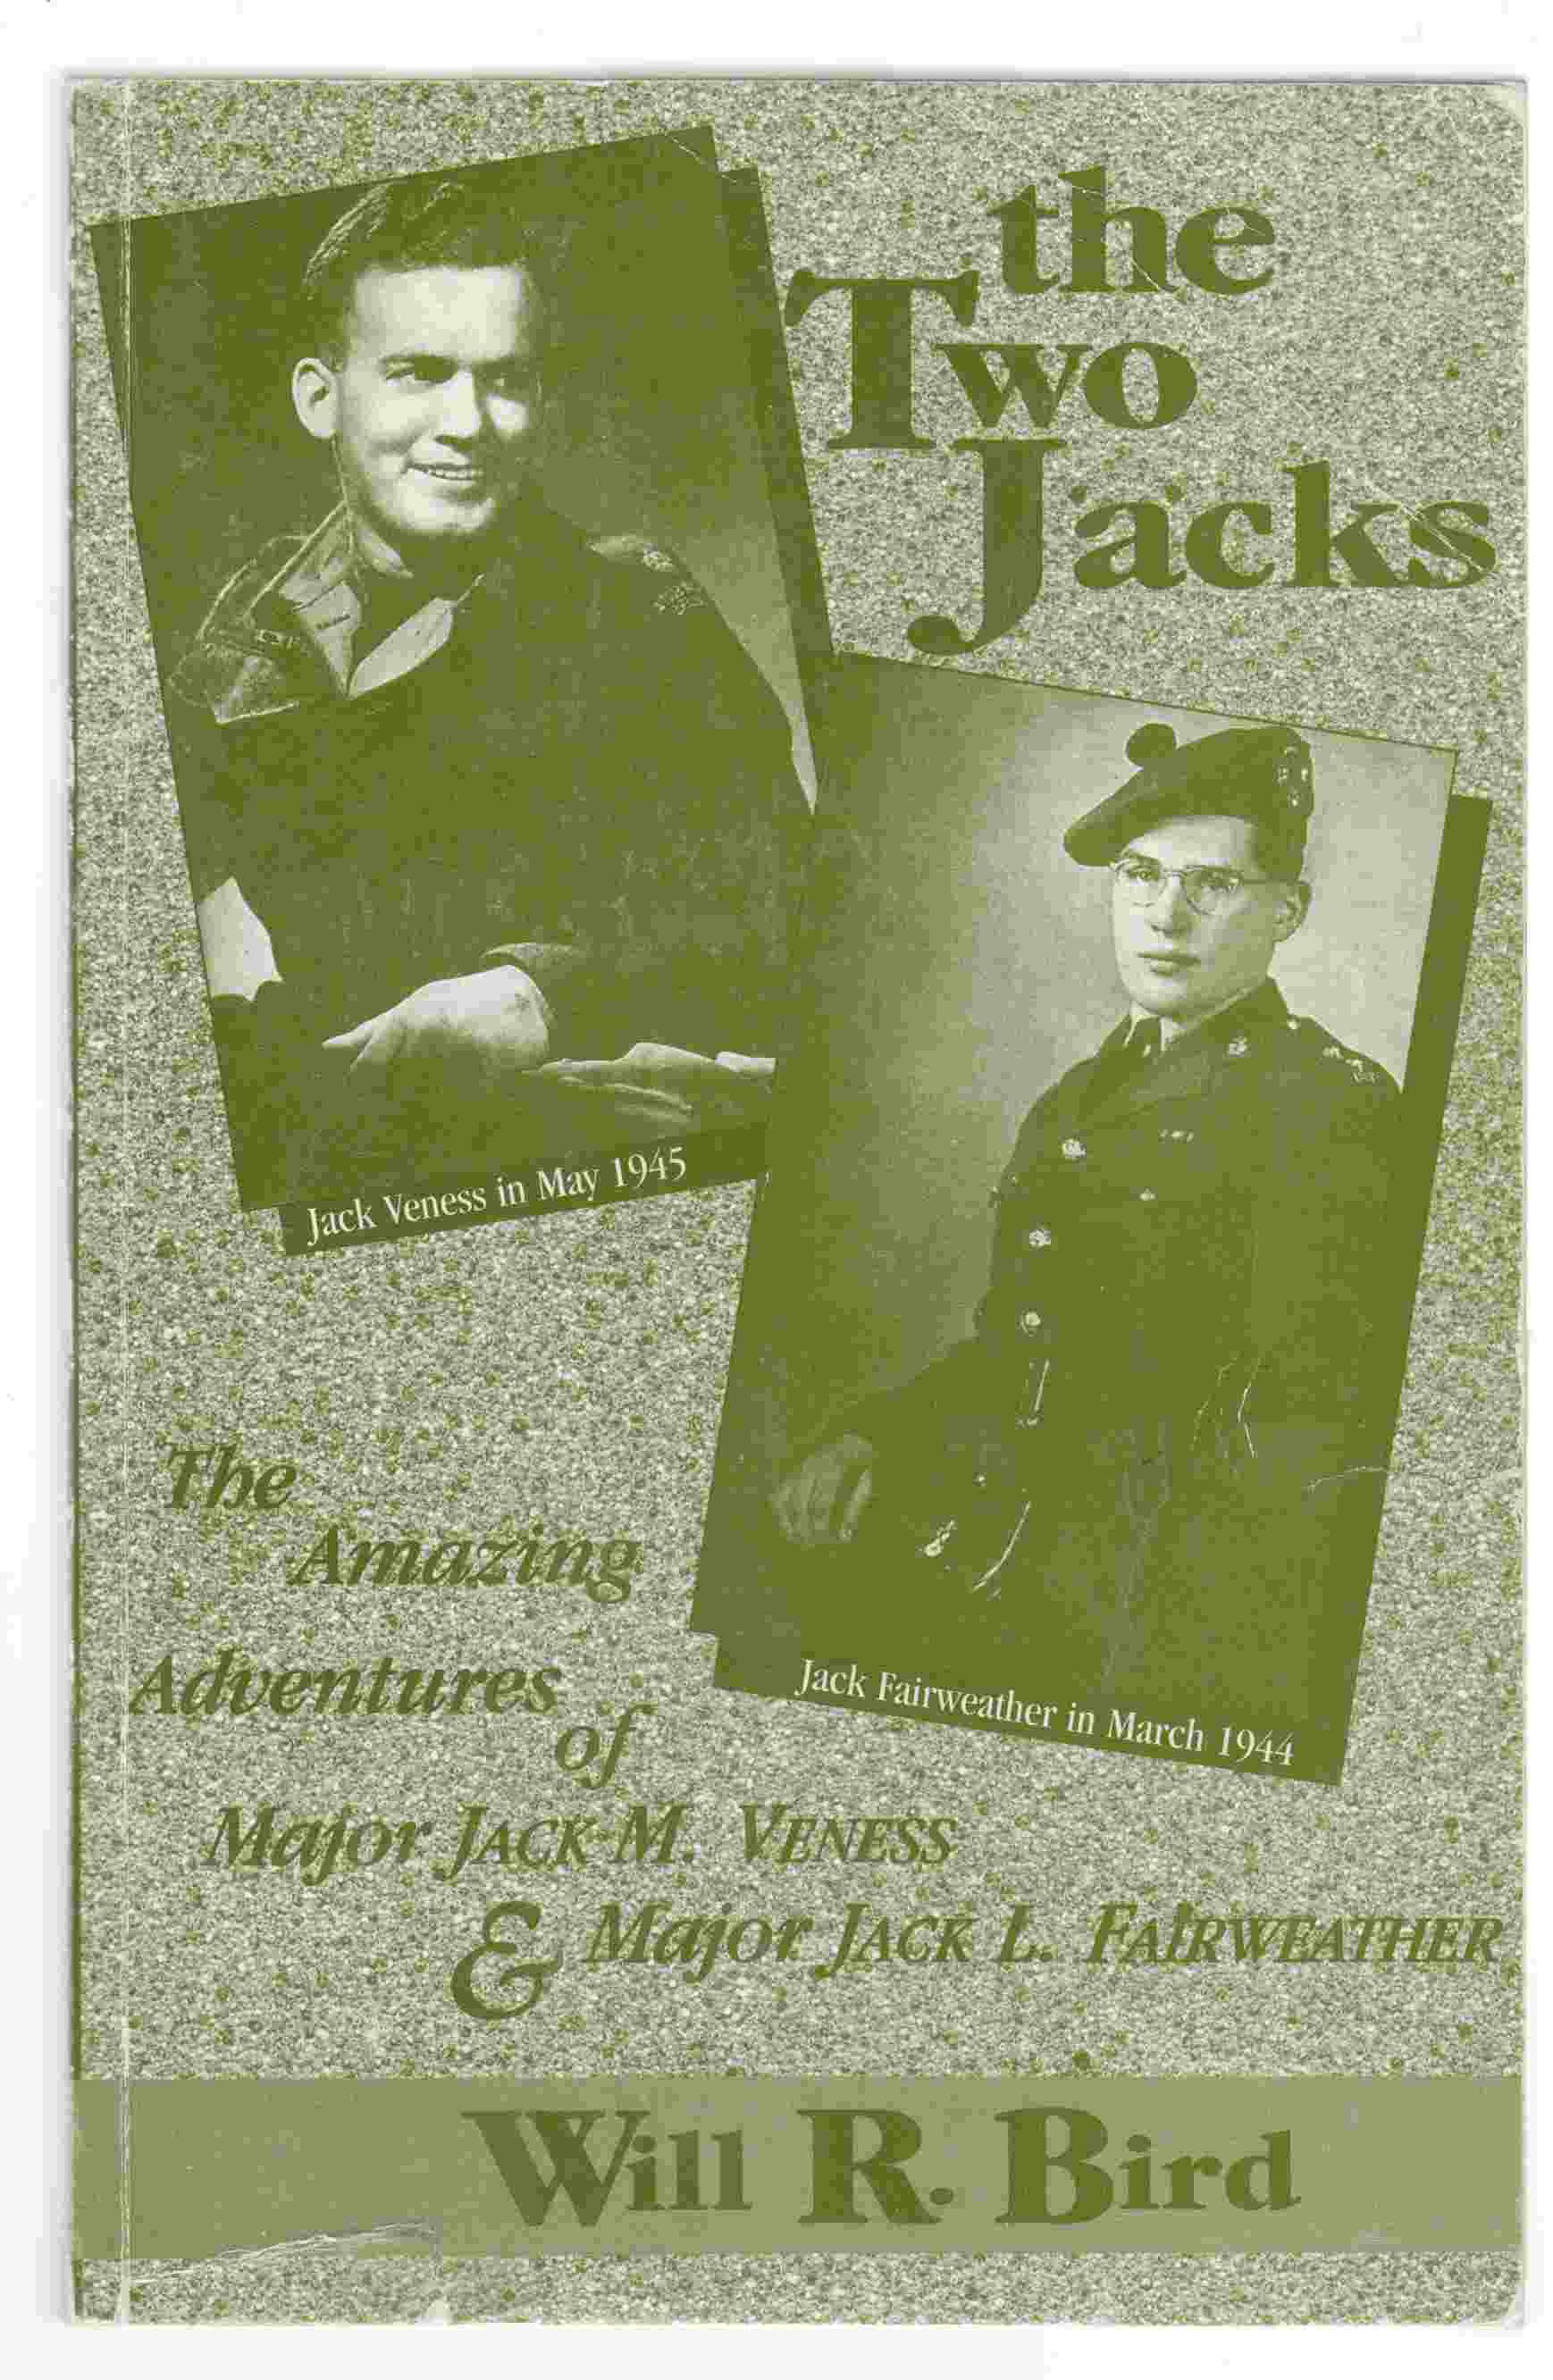 Image for The Two Jacks The Amazing Adventures of Major Jack M. Veness and Major Jack L. Fairweather